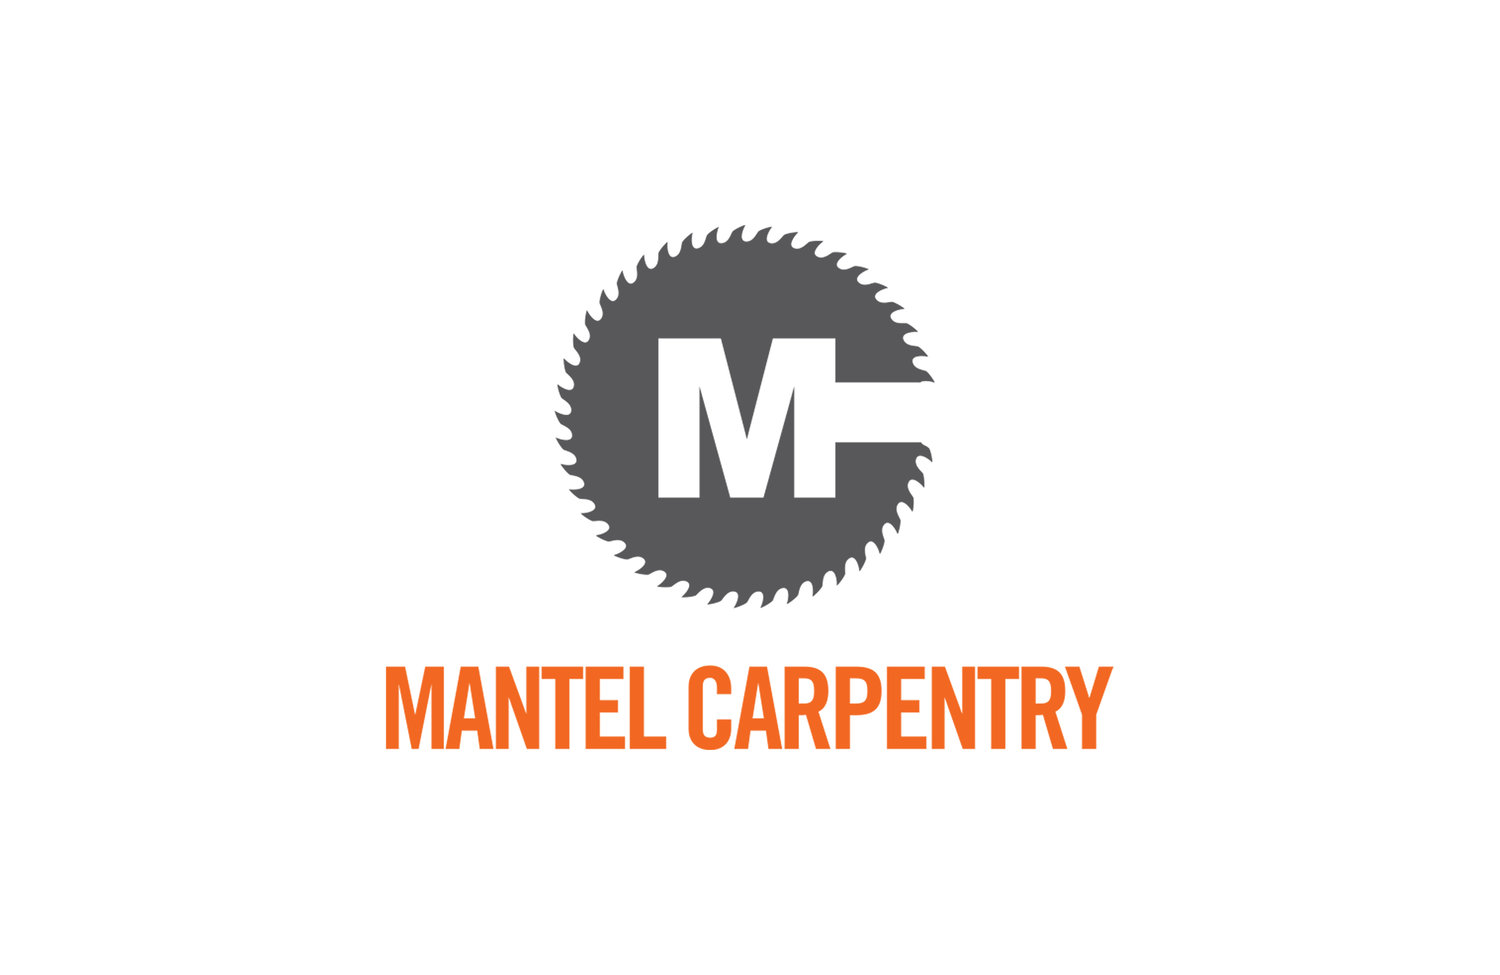 Mantel carpentry